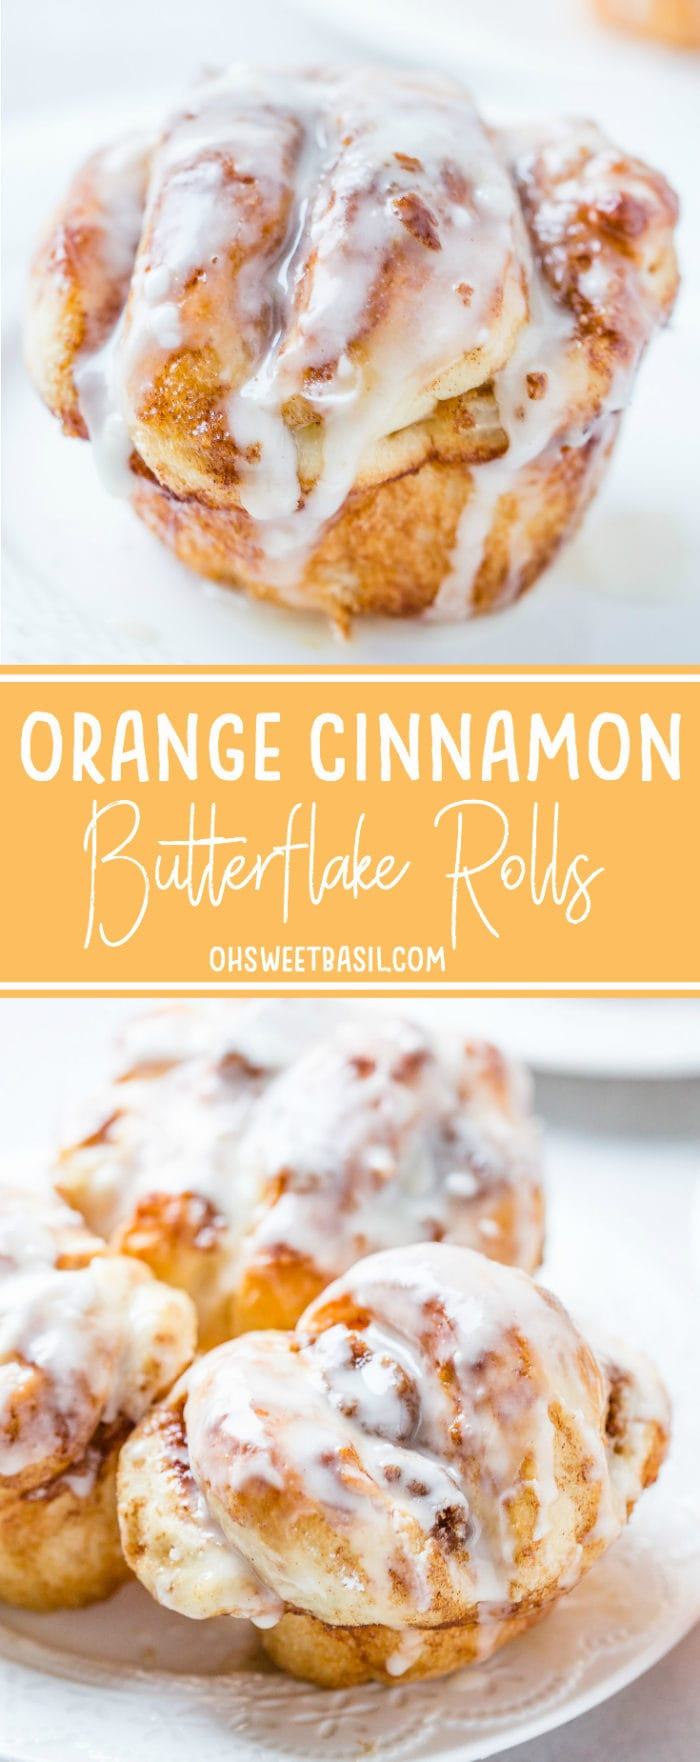 Oh. Sweet. Mercy. These Orange Cinnamon Butterflake Rolls made with Rhodes Rolls are my new favorite thing. That cinnamon butter filling is heaven!